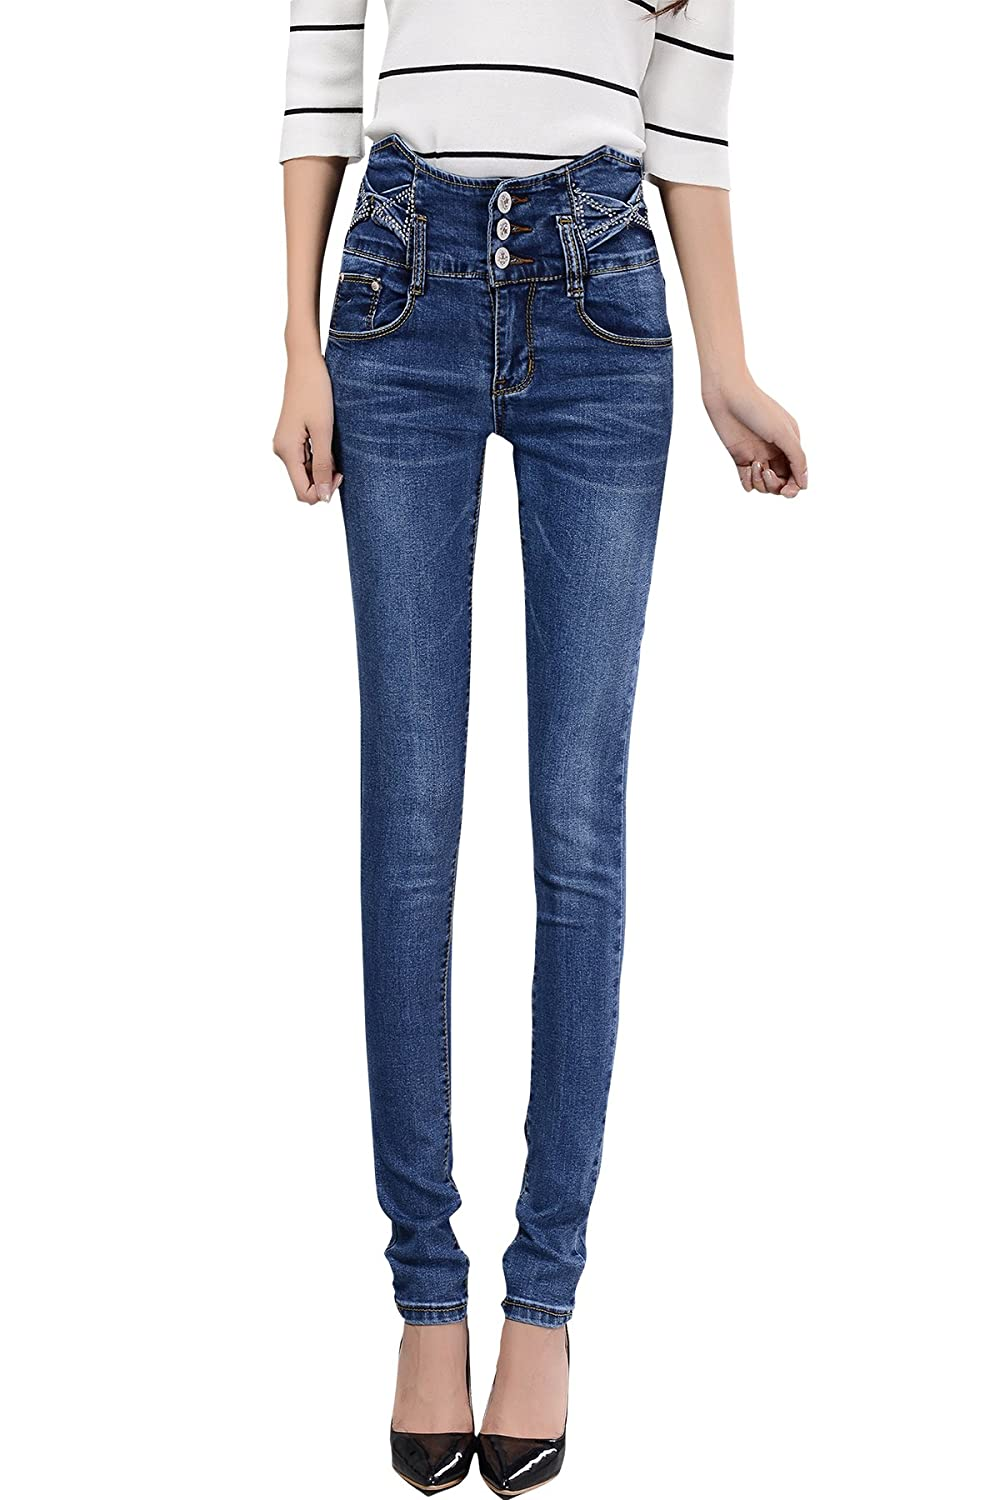 Egarden Women's Denim Jeans Stretch Stone Washed Slim Fit Tapered Legs